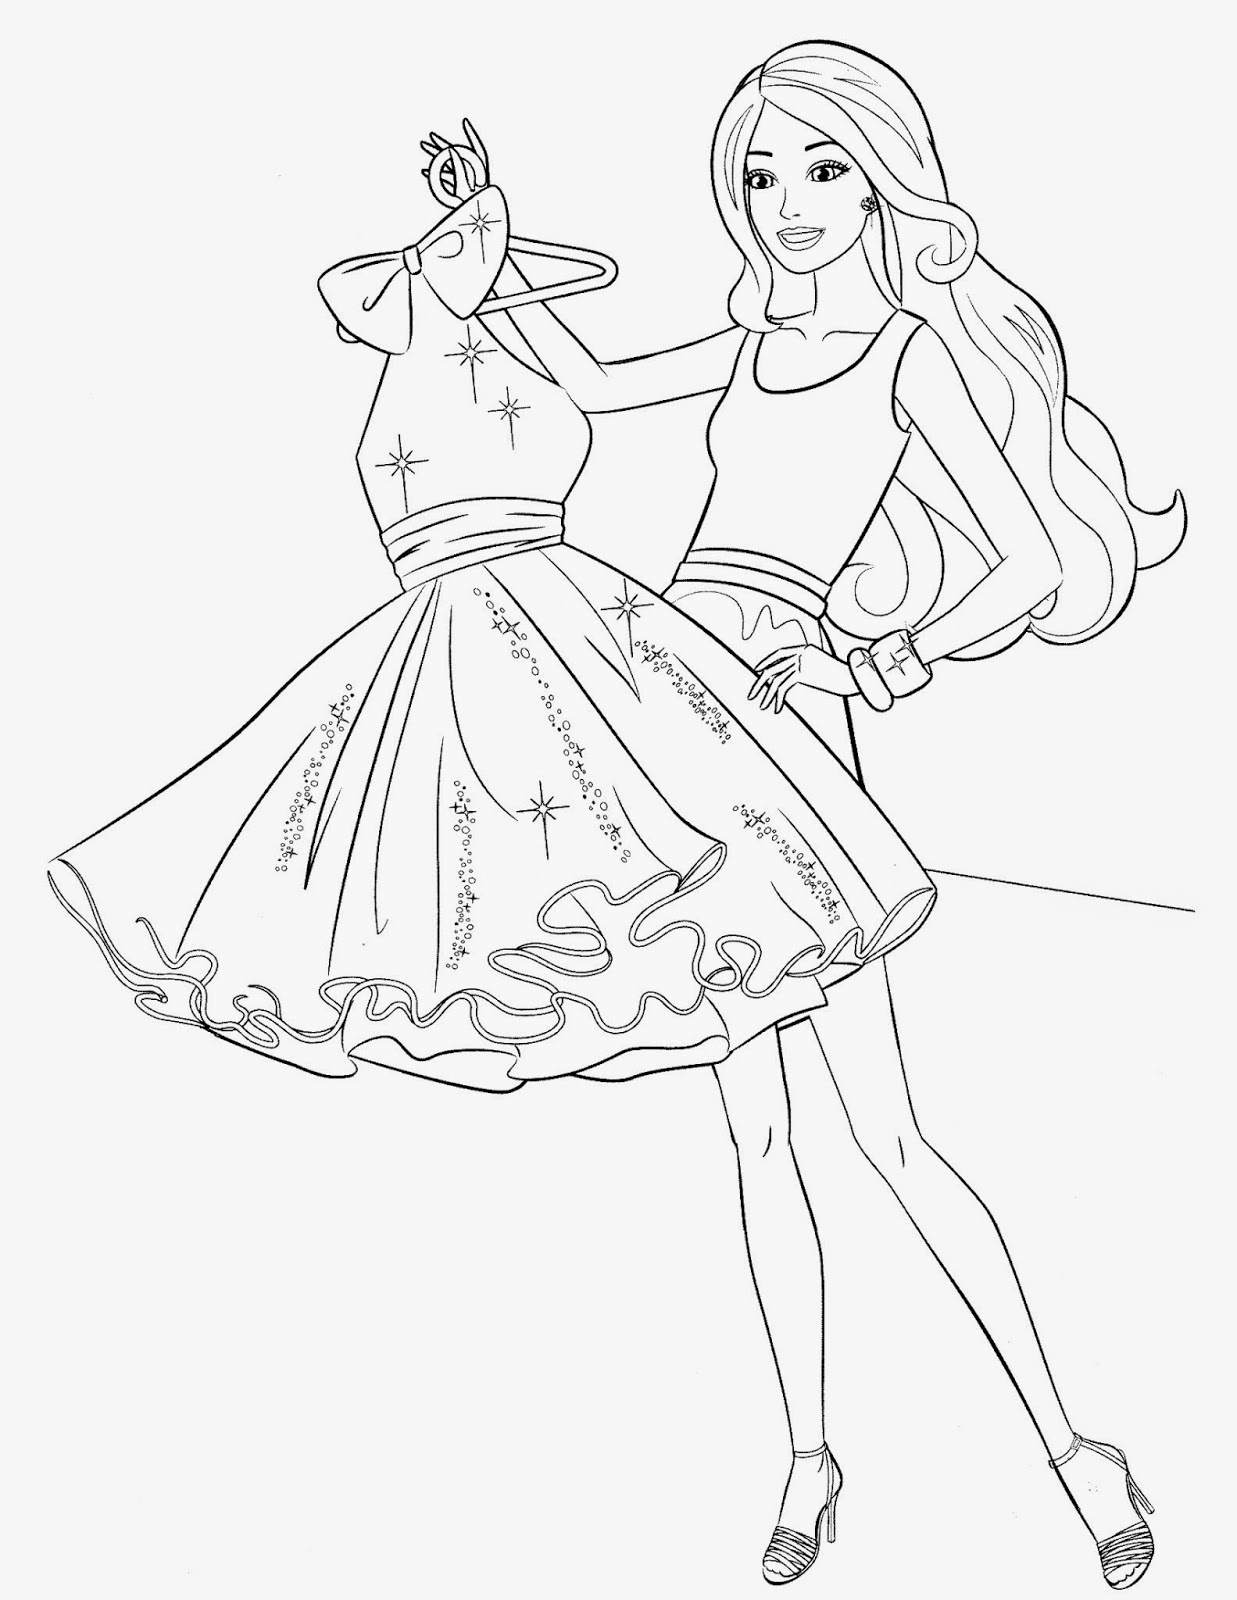 barbie colouring in picture beautiful barbie princess coloring page free printable in barbie picture colouring